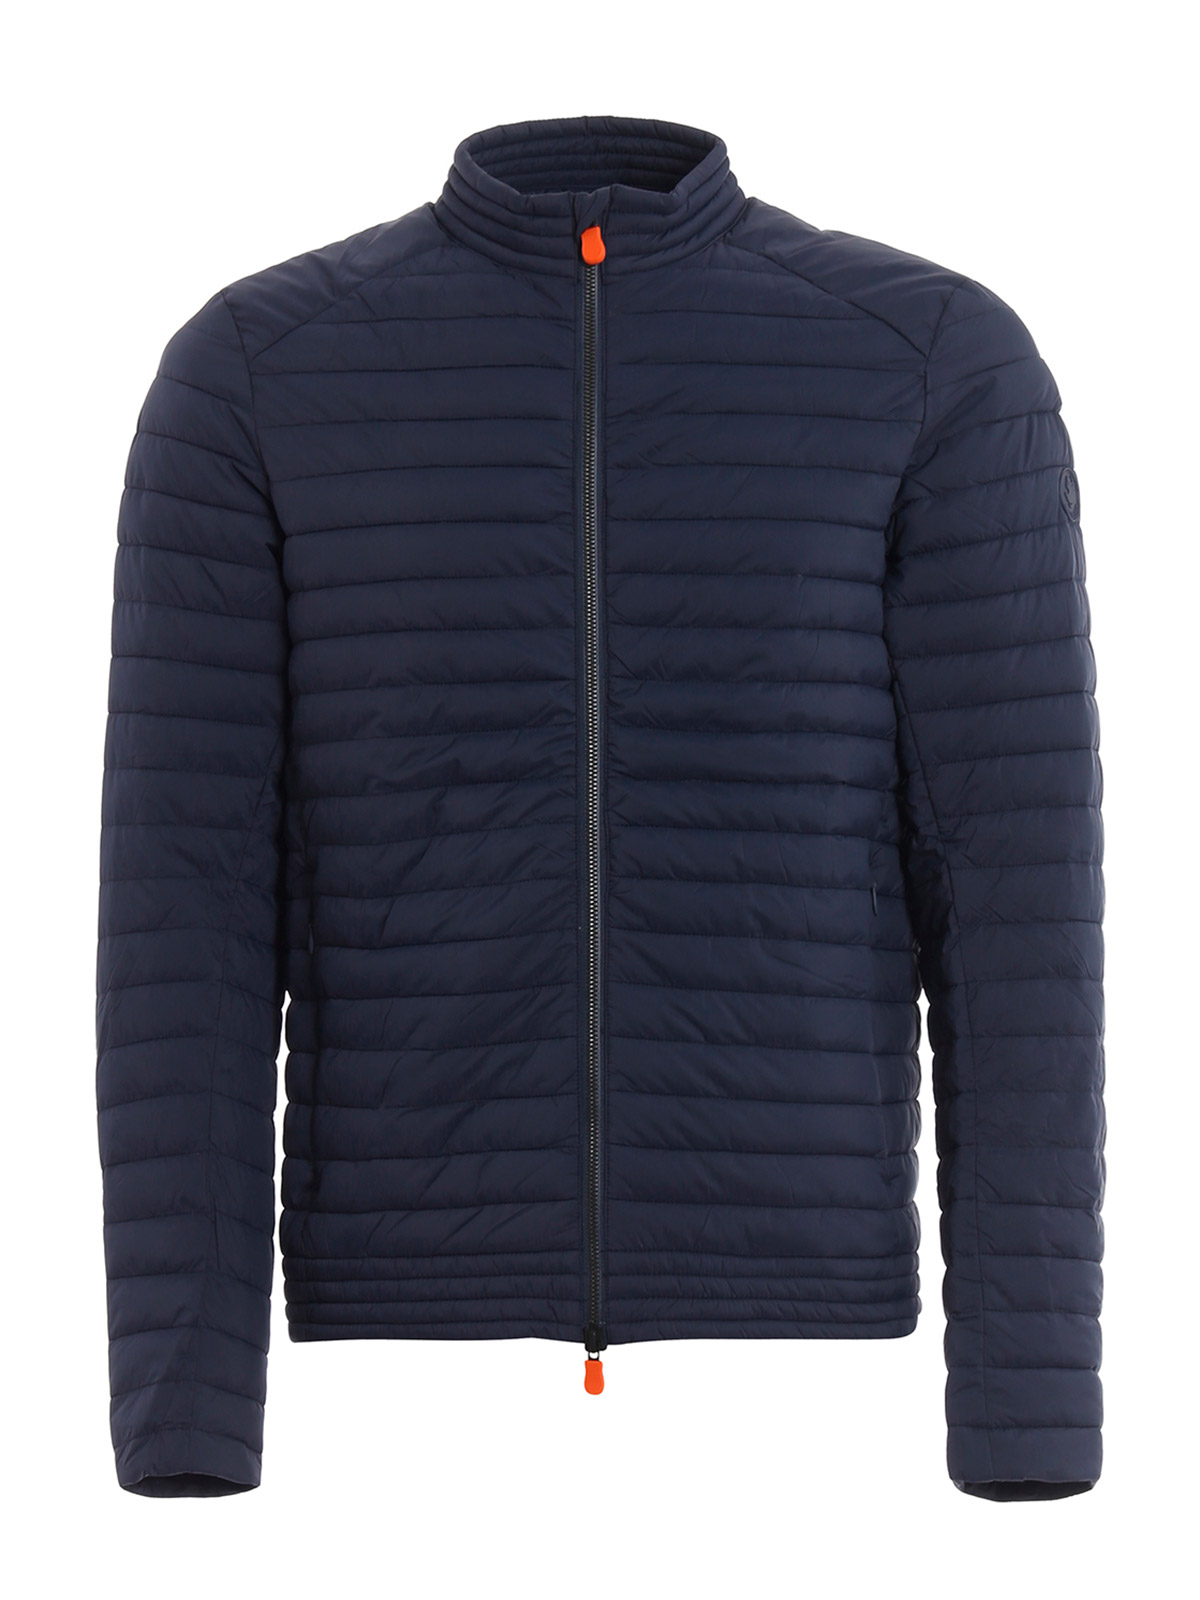 Picture of SAVE THE DUCK | Men's Padded Jacket D3643M